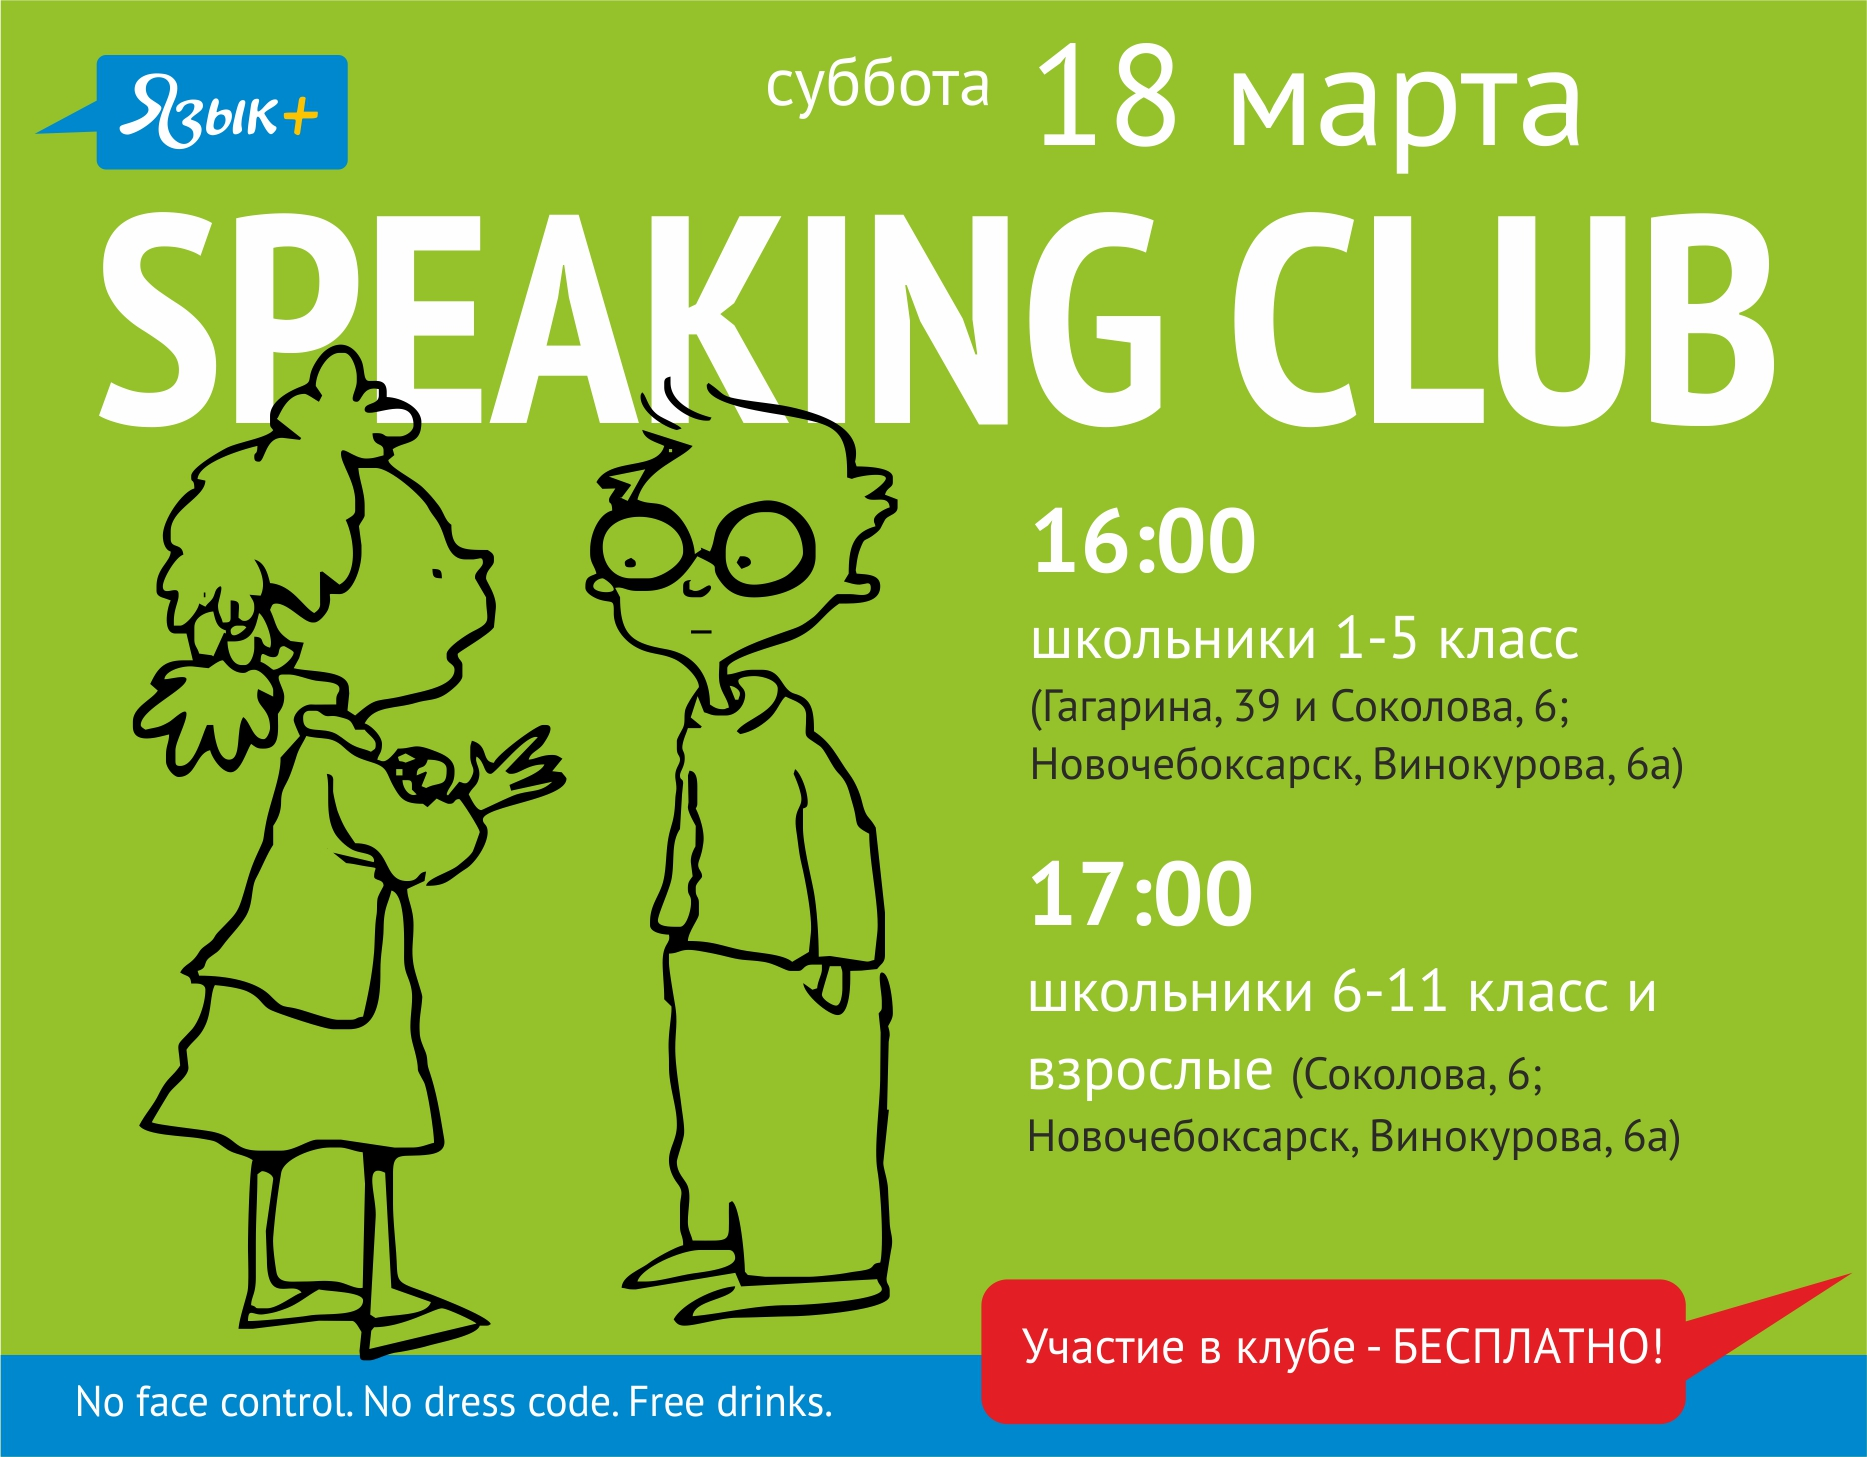 SPEAKING CLUB 18/04/17